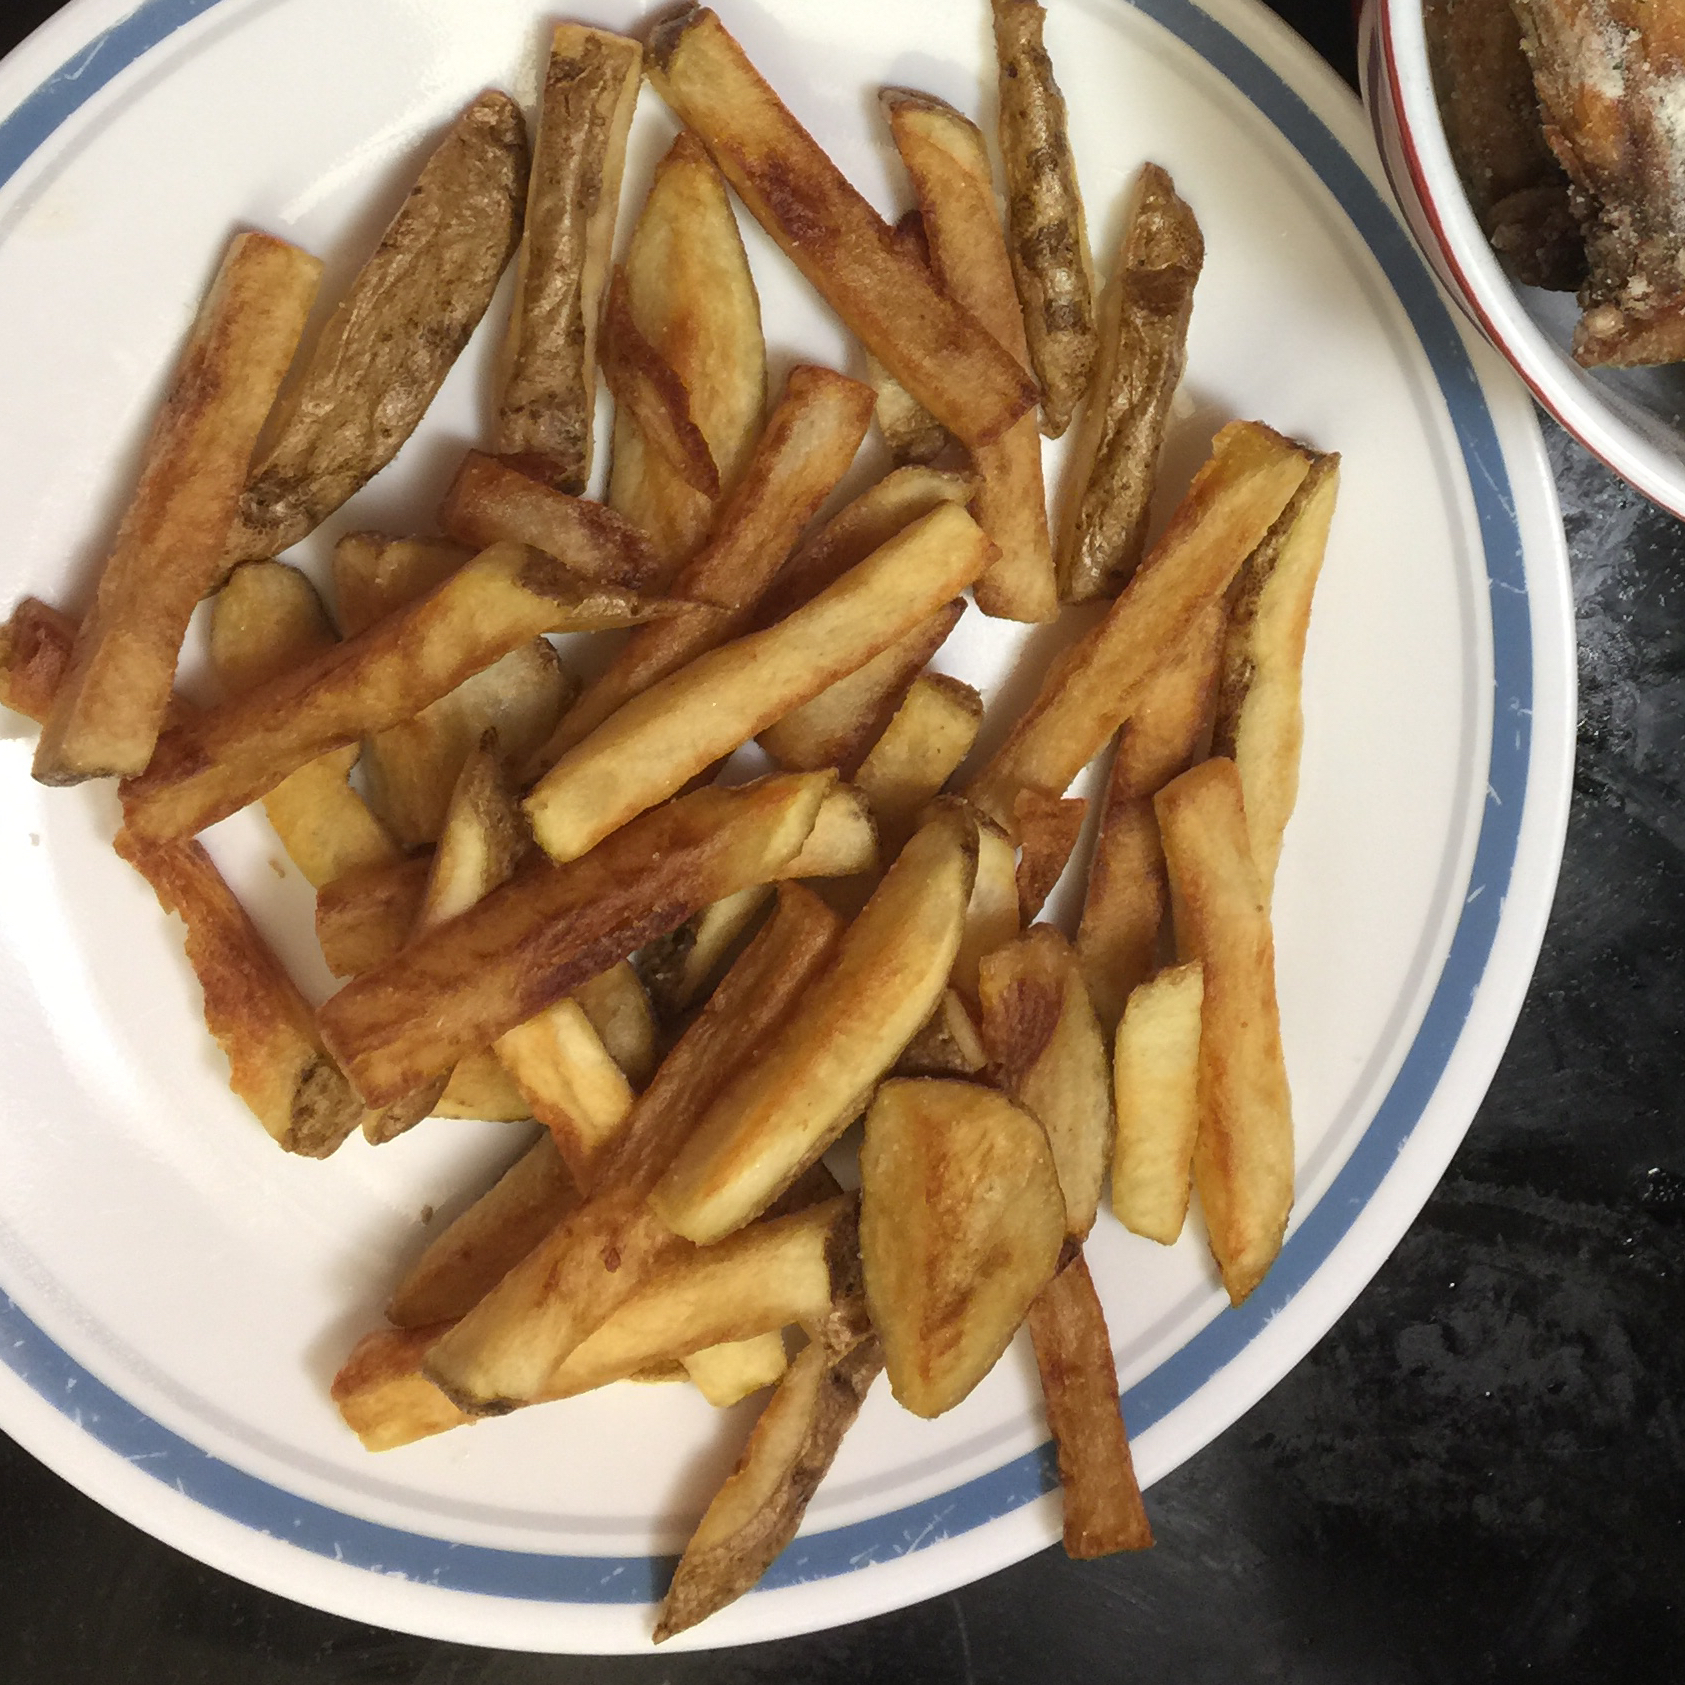 Chef John's French Fries on a white plate with a blue rim